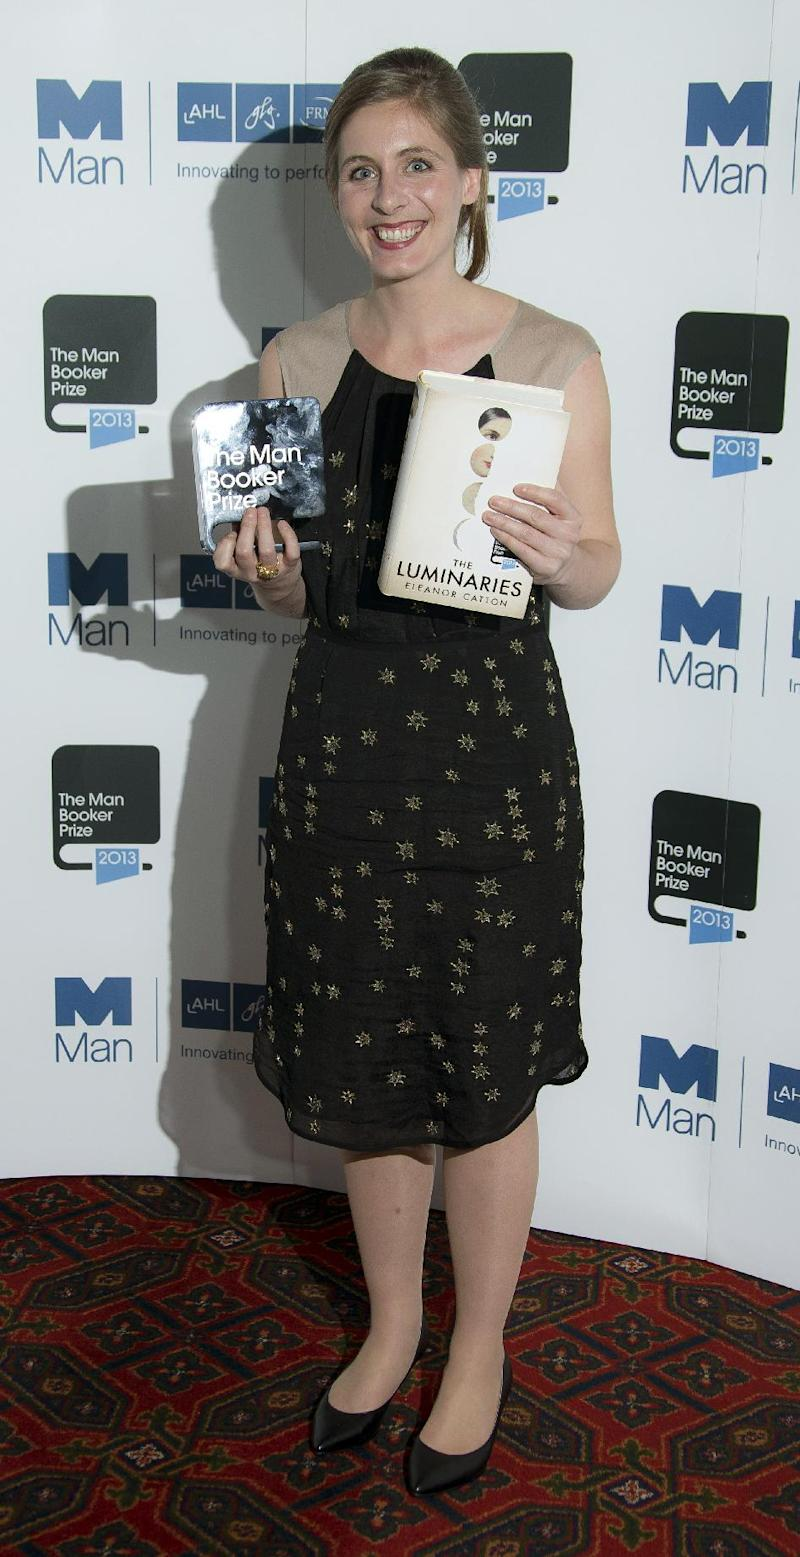 New Zealand author Eleanor Catton poses after being announced the winner of the Man Booker Prize for Fiction, holding her prize and her book for the photographers, in central London, Tuesday Oct. 15, 2013. Catton won the 50,000 pounds ($80,000) prize with her book 'The Luminaries'. (Photo by Joel Ryan/Invision/AP)